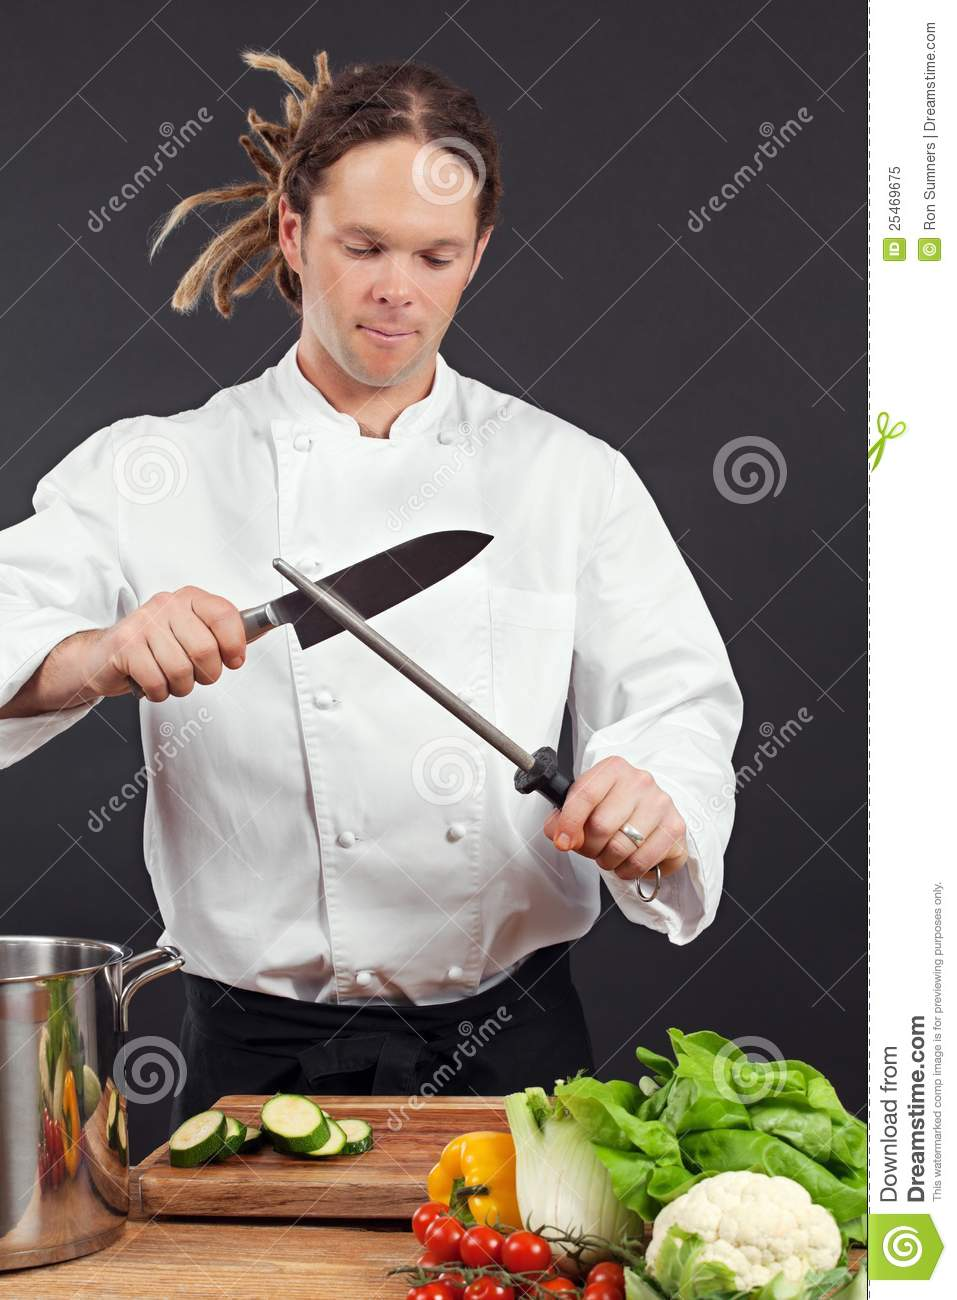 chef sharpening his knife stock image image of male 25469675. Black Bedroom Furniture Sets. Home Design Ideas